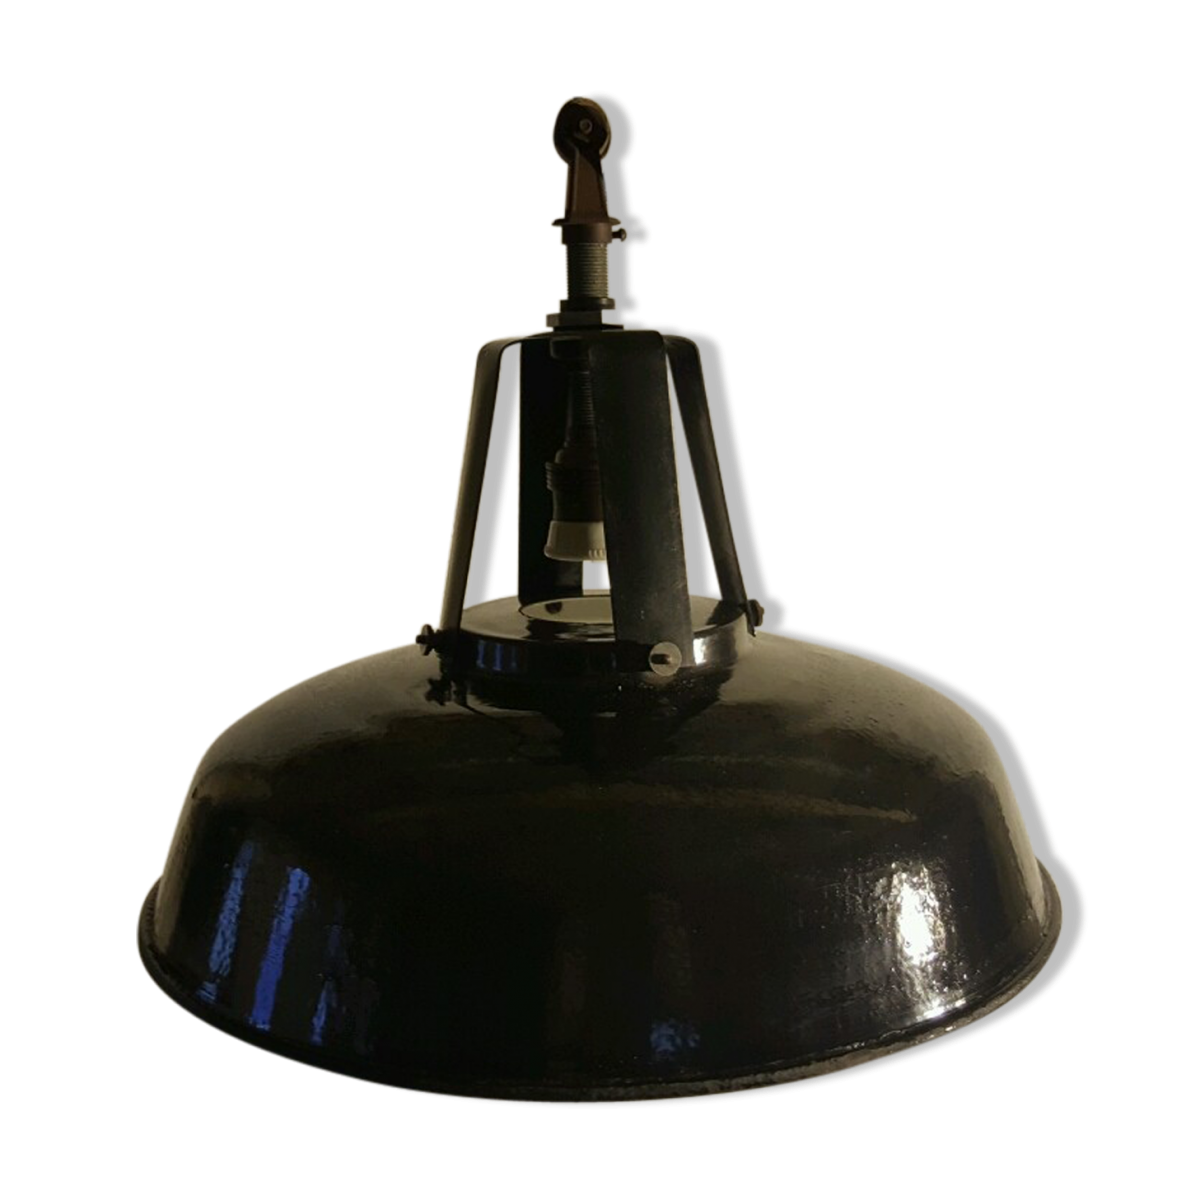 Lampe d'atelier, suspension d'usine, vintage